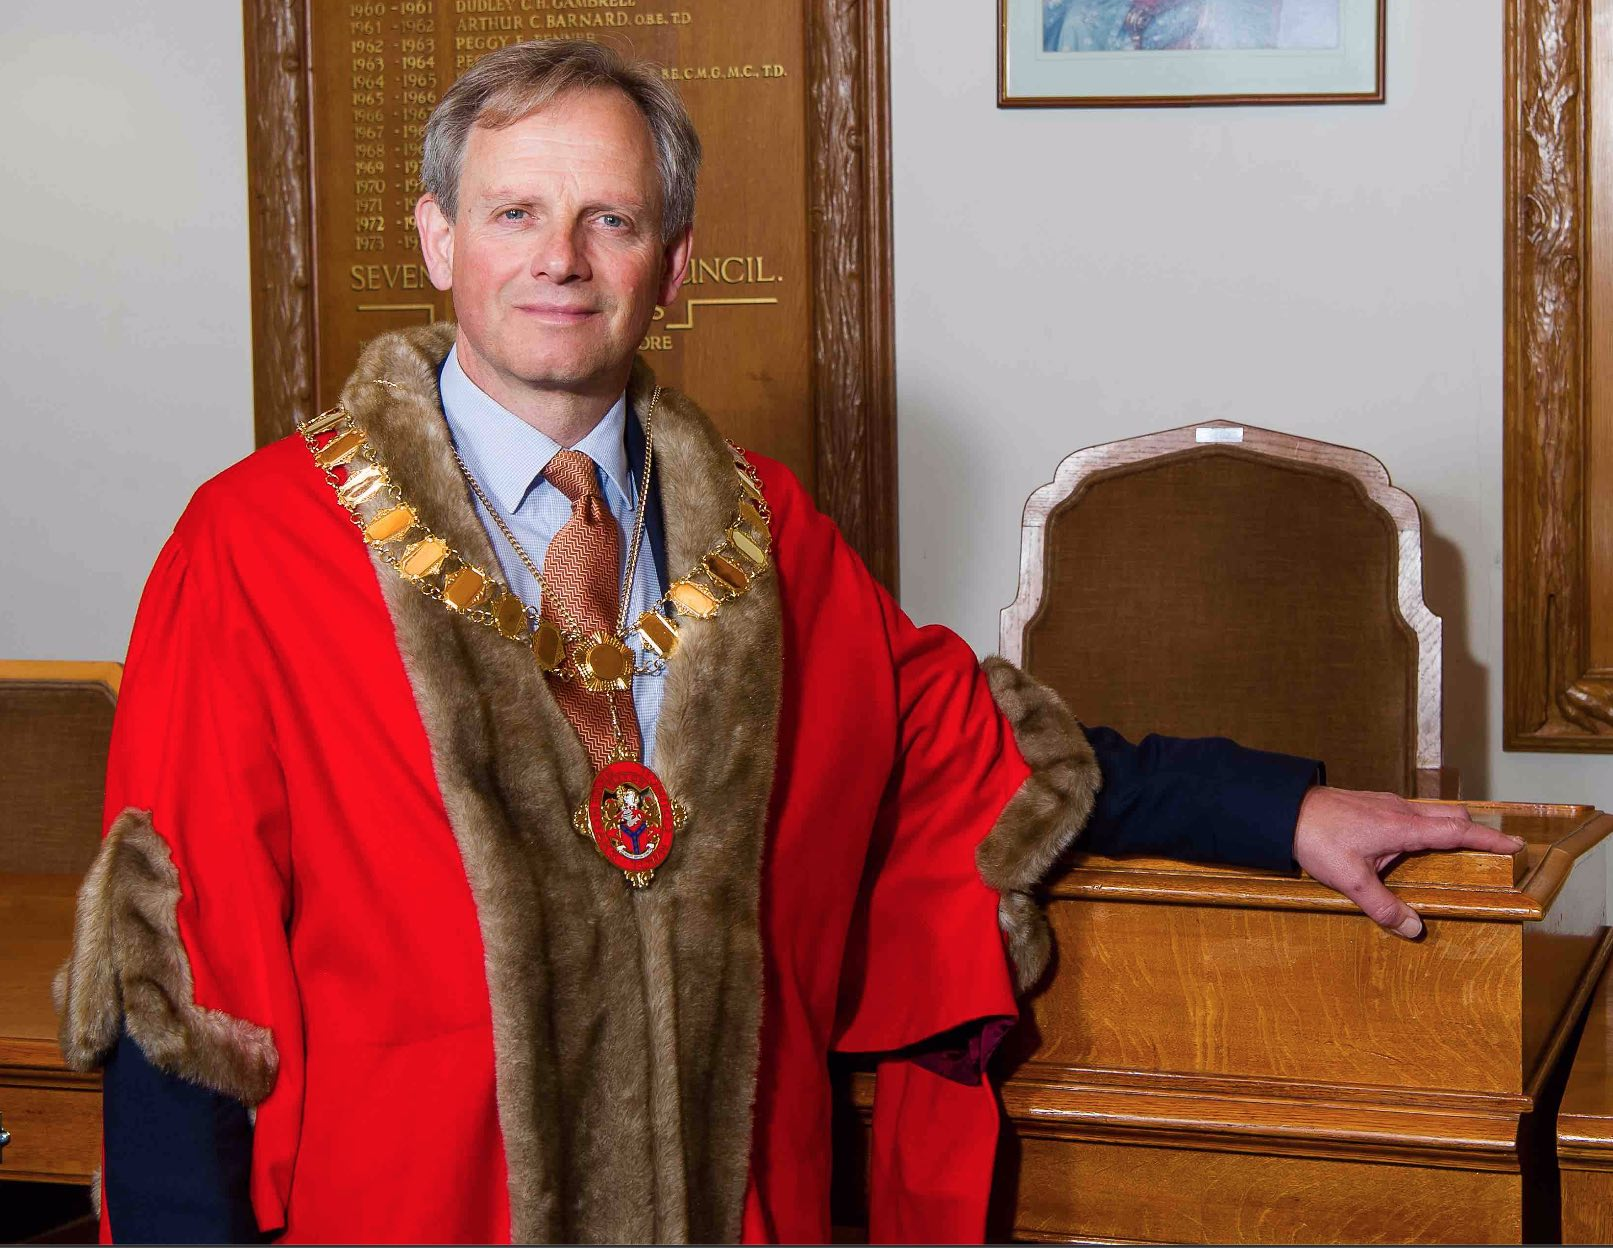 Cllr Nicholas Busvine elected as Mayor of Sevenoaks